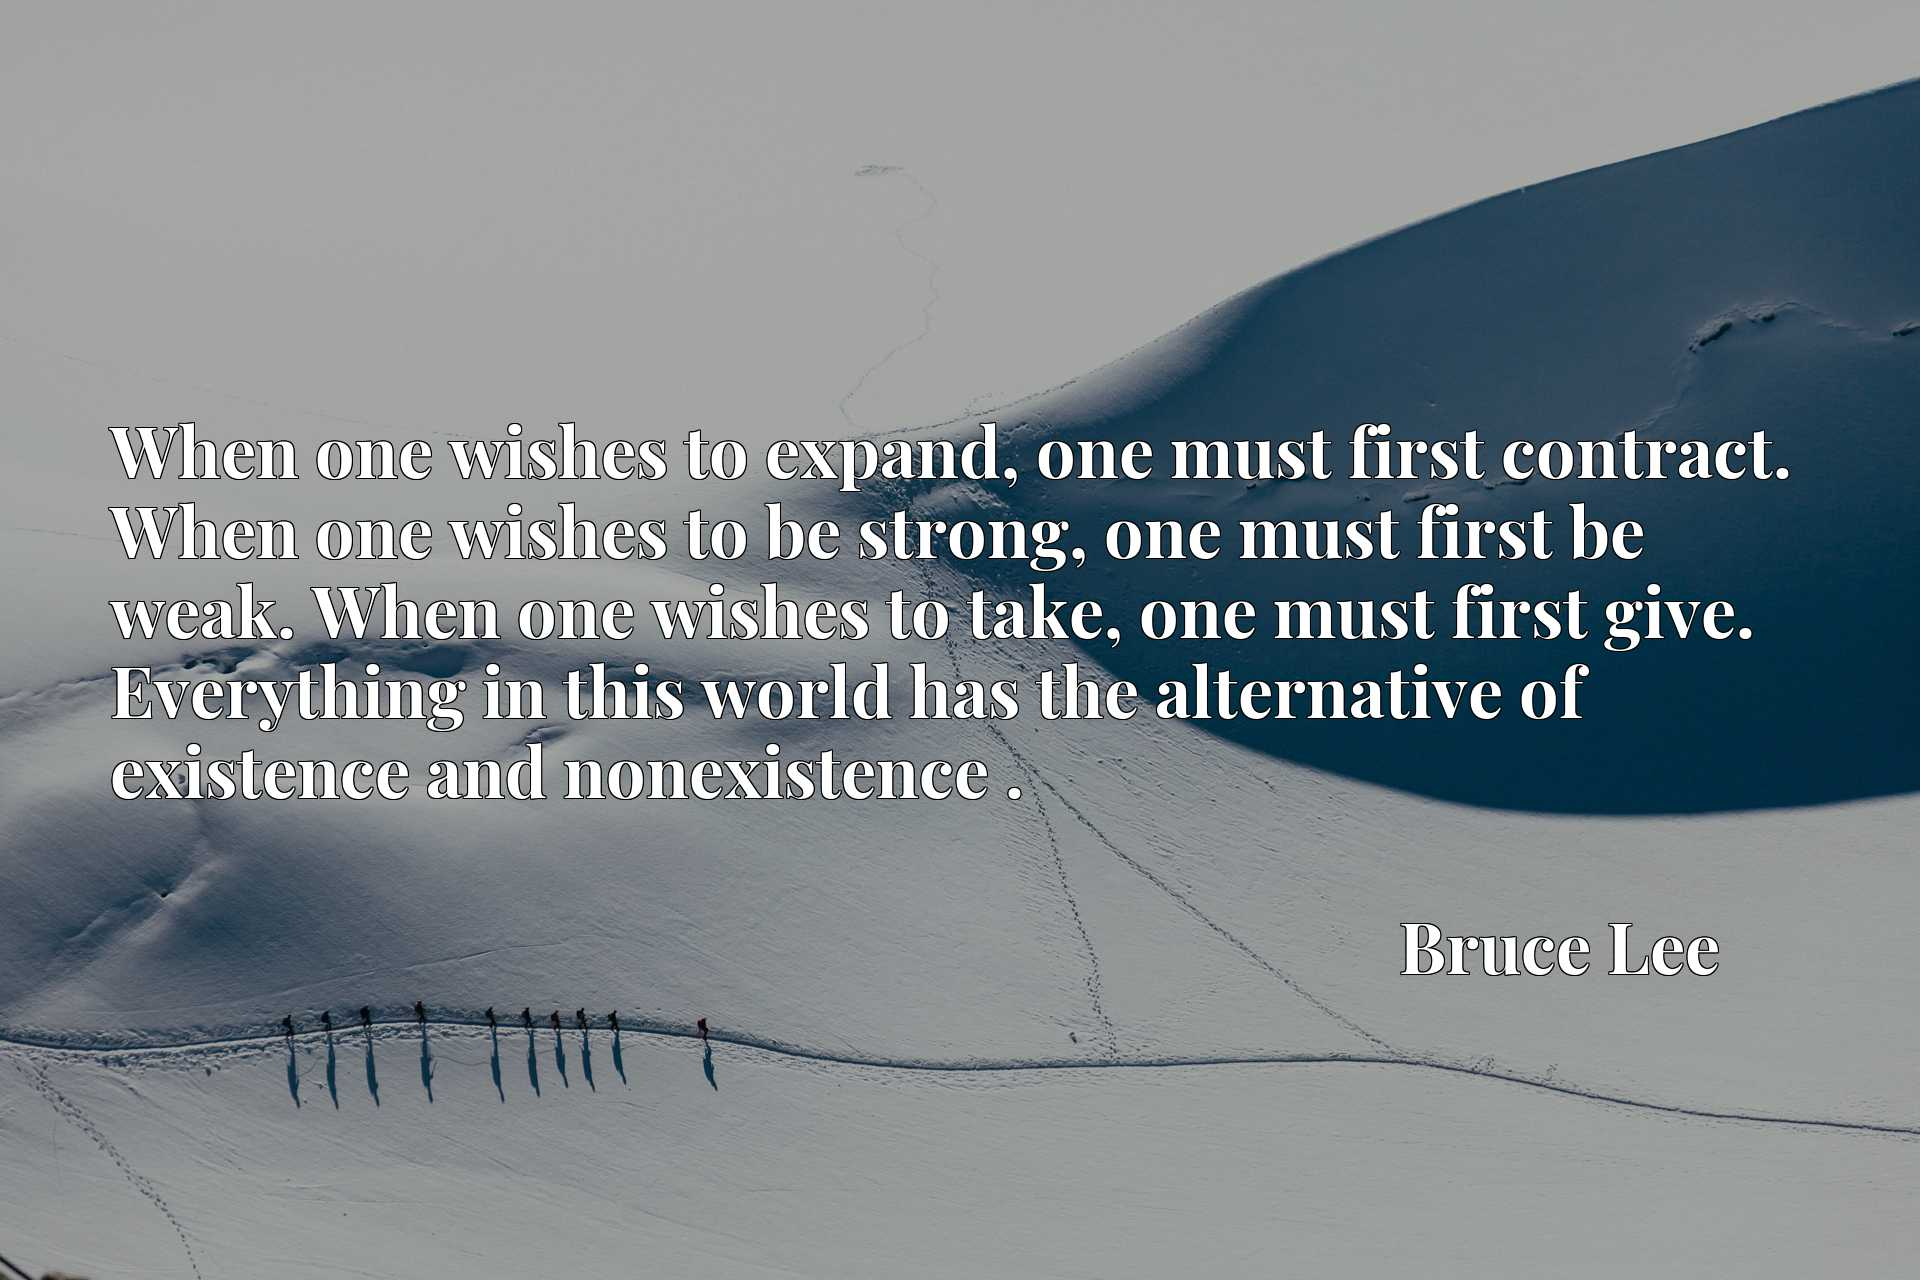 When one wishes to expand, one must first contract. When one wishes to be strong, one must first be weak. When one wishes to take, one must first give. Everything in this world has the alternative of existence and nonexistence .